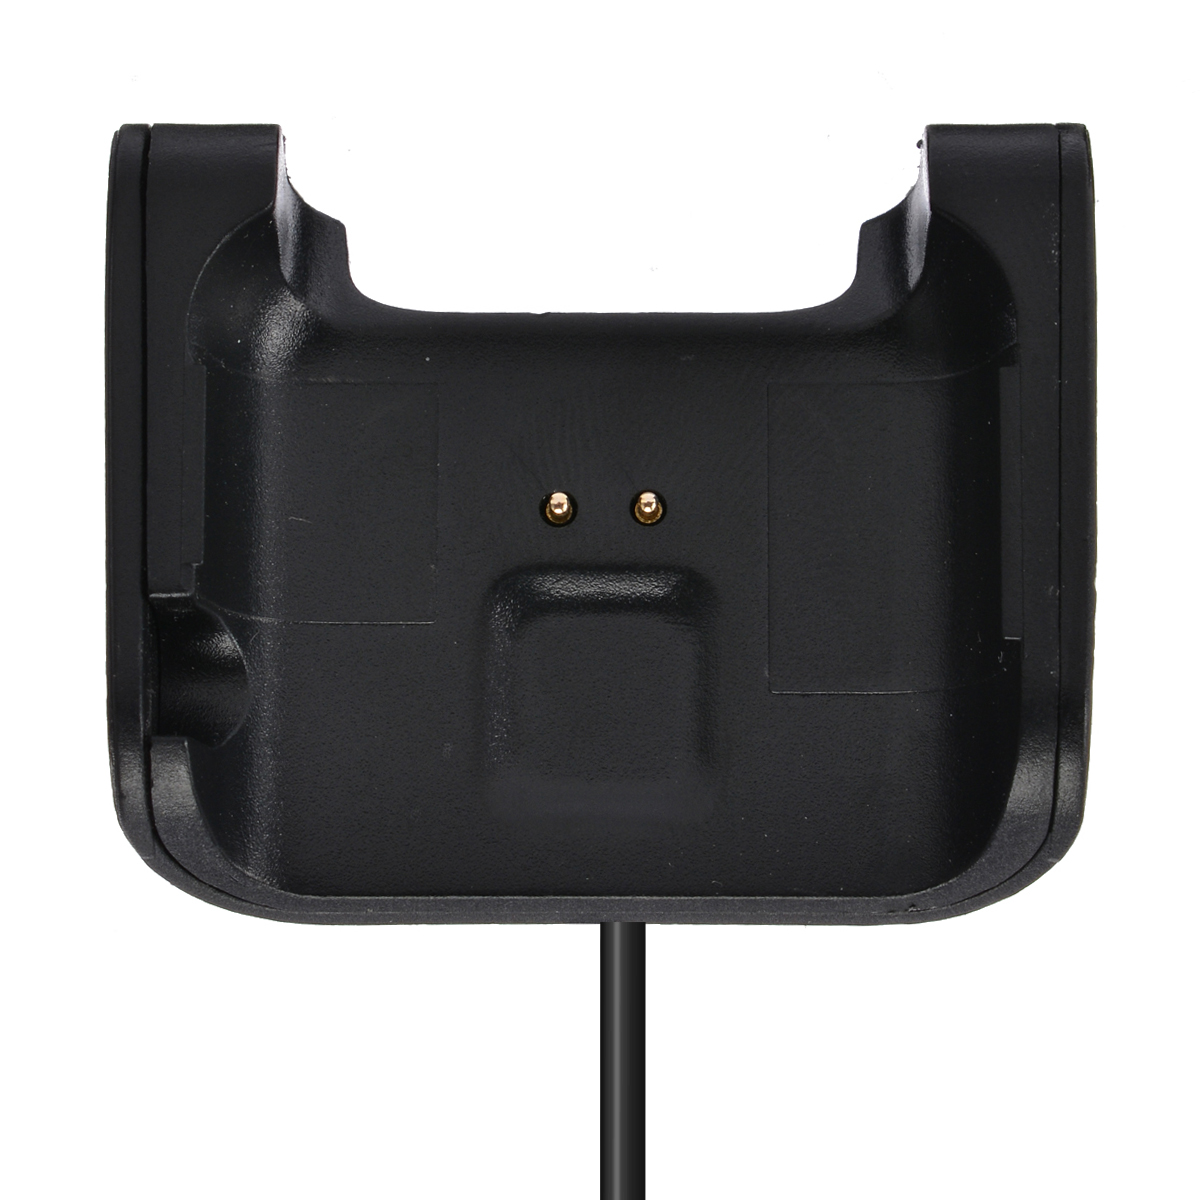 Magnetic Cradle Charging Dock for Xiaomi Huami AMAZFIT A1608 Bip Smart Watch USB Charger Replacement Cradle Dock Station